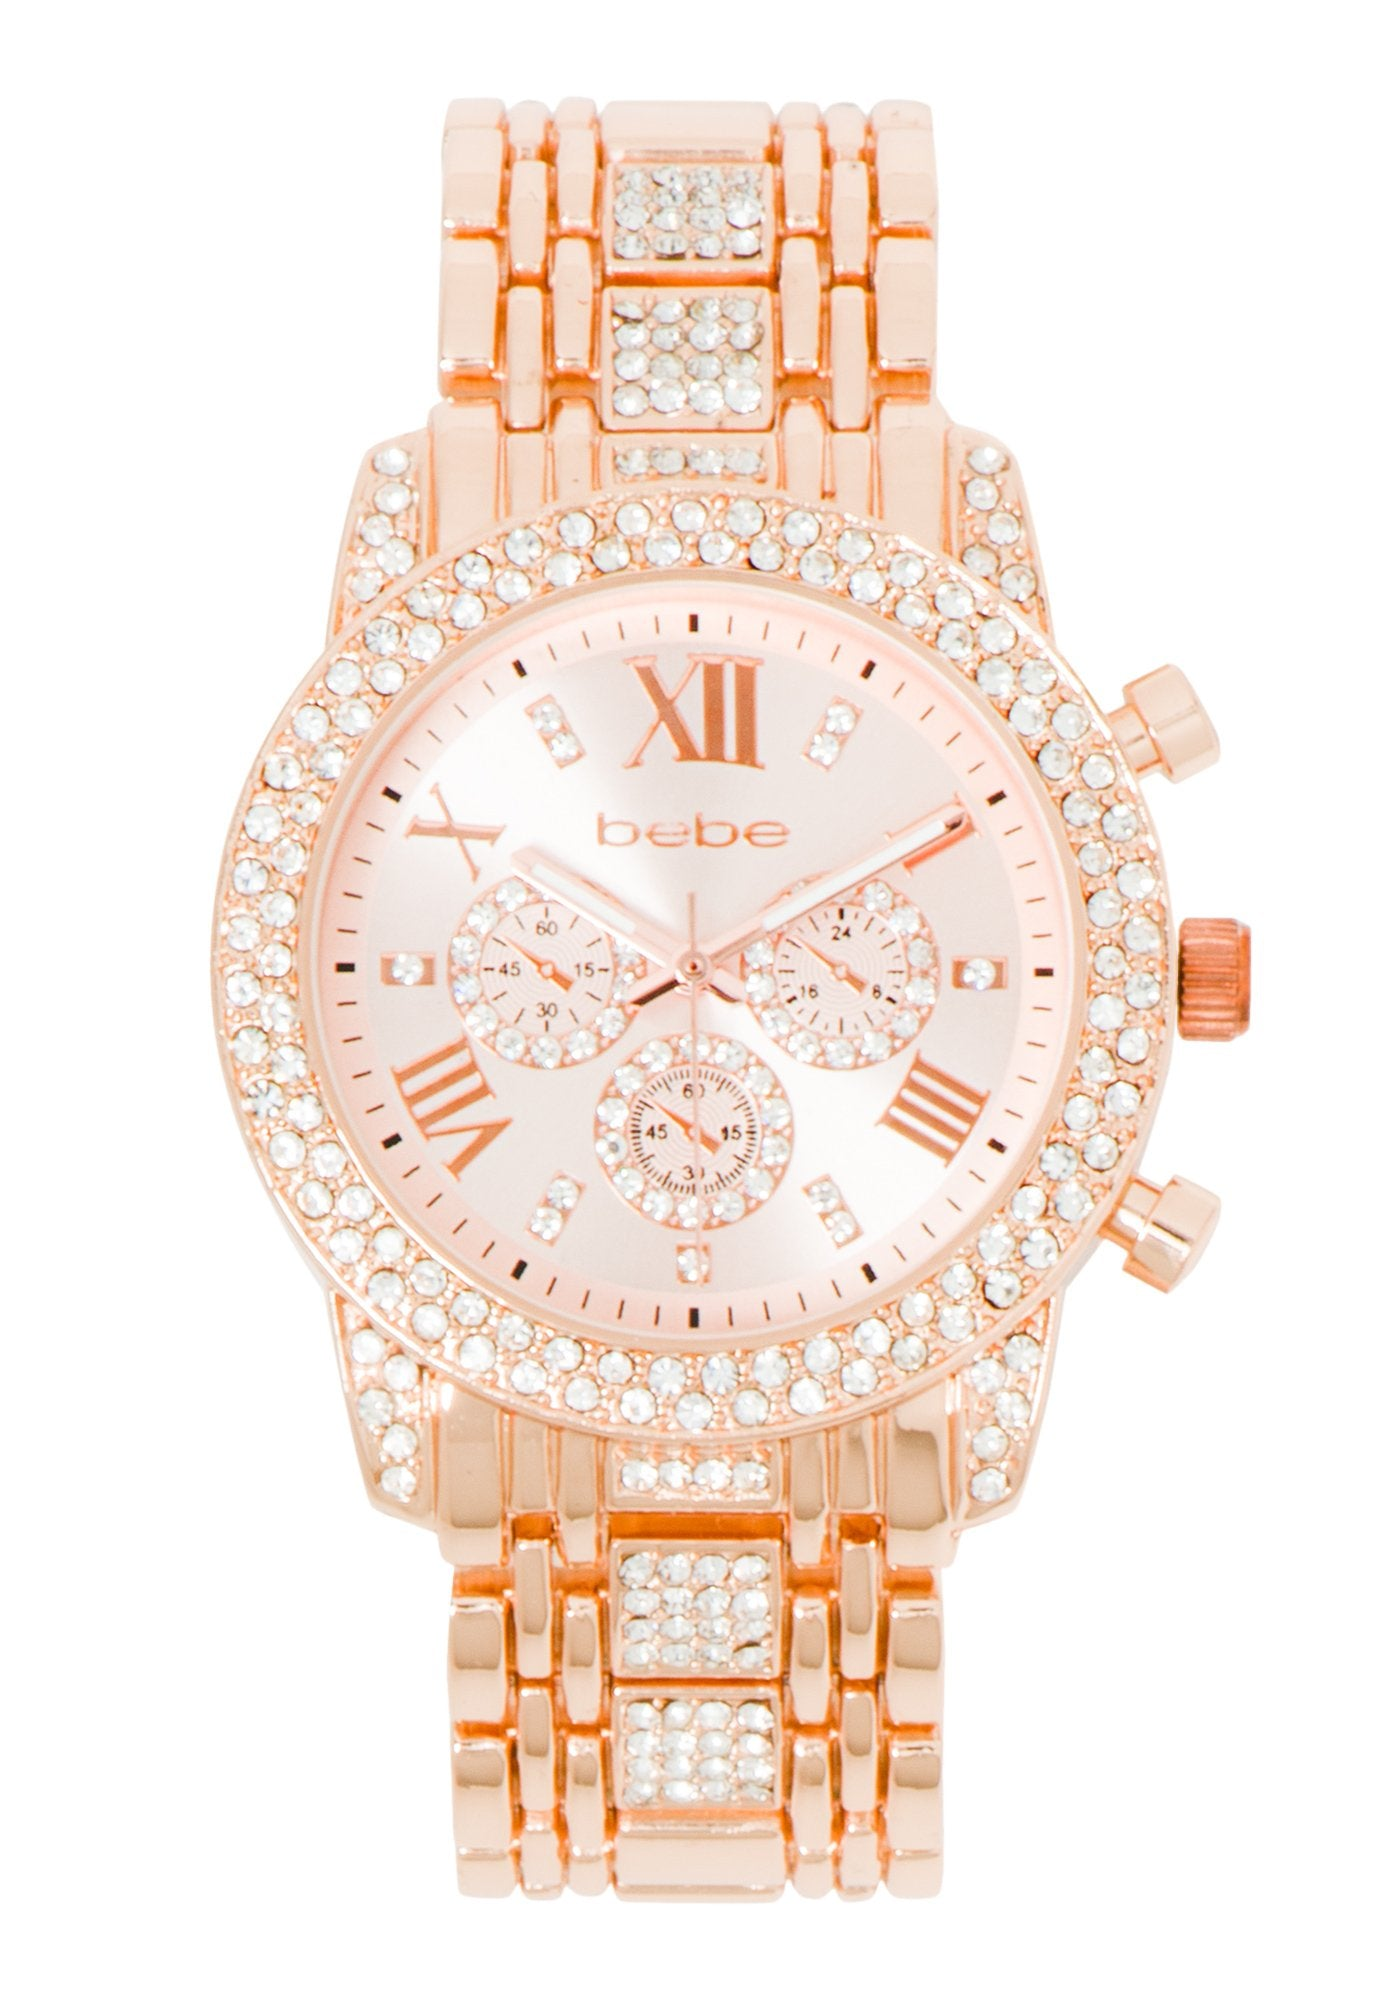 Women's Bebe Rhinestone Watch in ROSE GOLD Metal